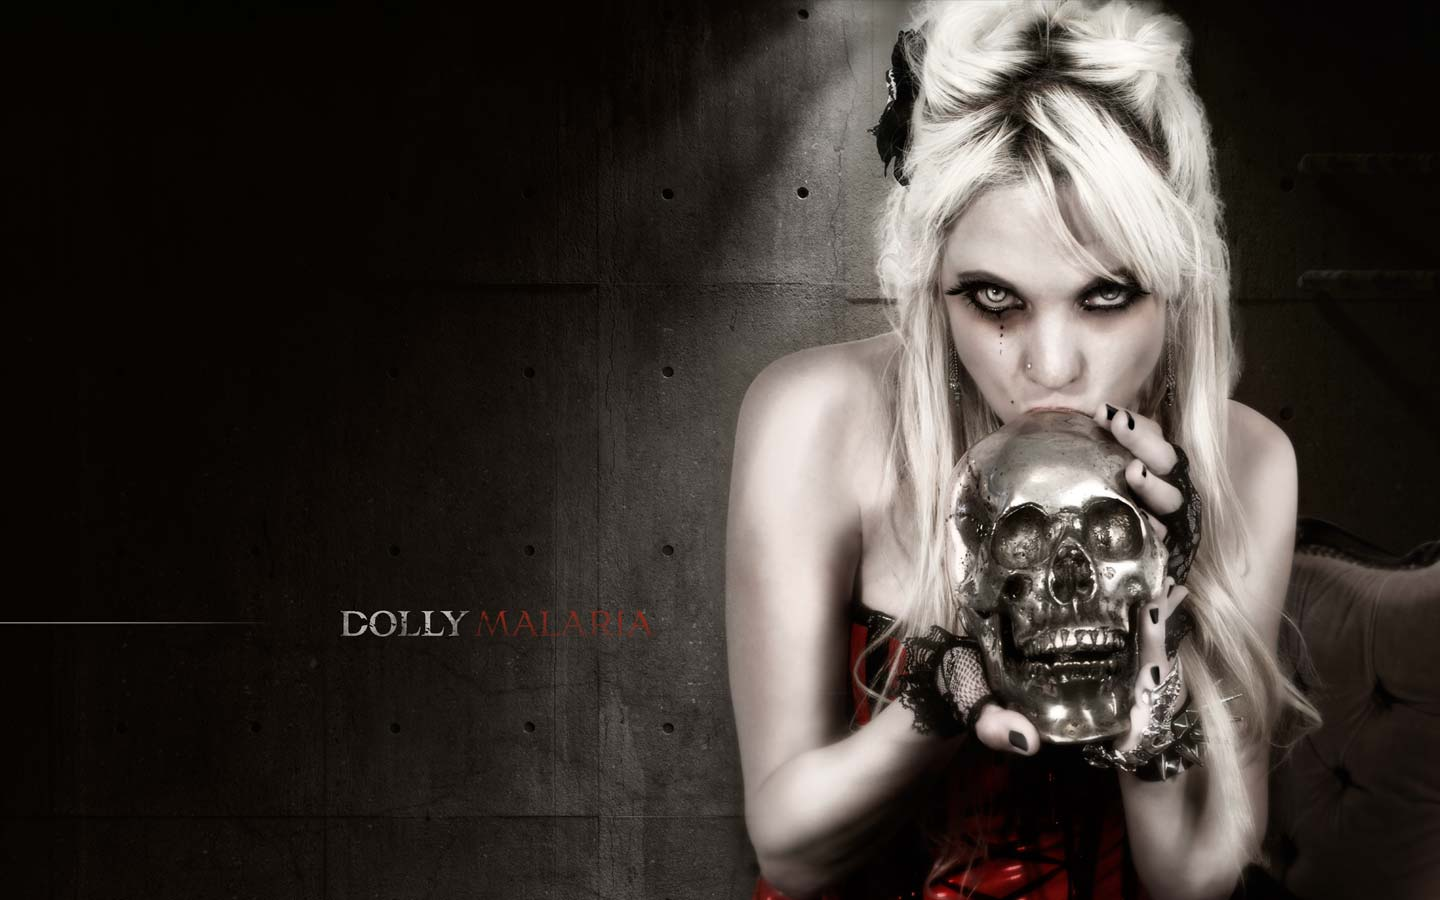 Dolly Malaria - Digital Art - Laurent Lemoigne - Donanubis - Don Anubis - Graphic Design - Logo Design - Cd Cover - Myspace Layout - Webdesign - Singer - Alternative _ Rock - Metal - Electro - Band - Geneva - Switzerland - Art - Music - Industrial - Dark - Marilyn - Manson - Skull - Latex - Fetish - Mechanic - Factory - Rust - Abandonned - Decay - Apocalypse - Doomsday - Beautiful - Woman - Alternative - Underground - Geneva - Switzerland